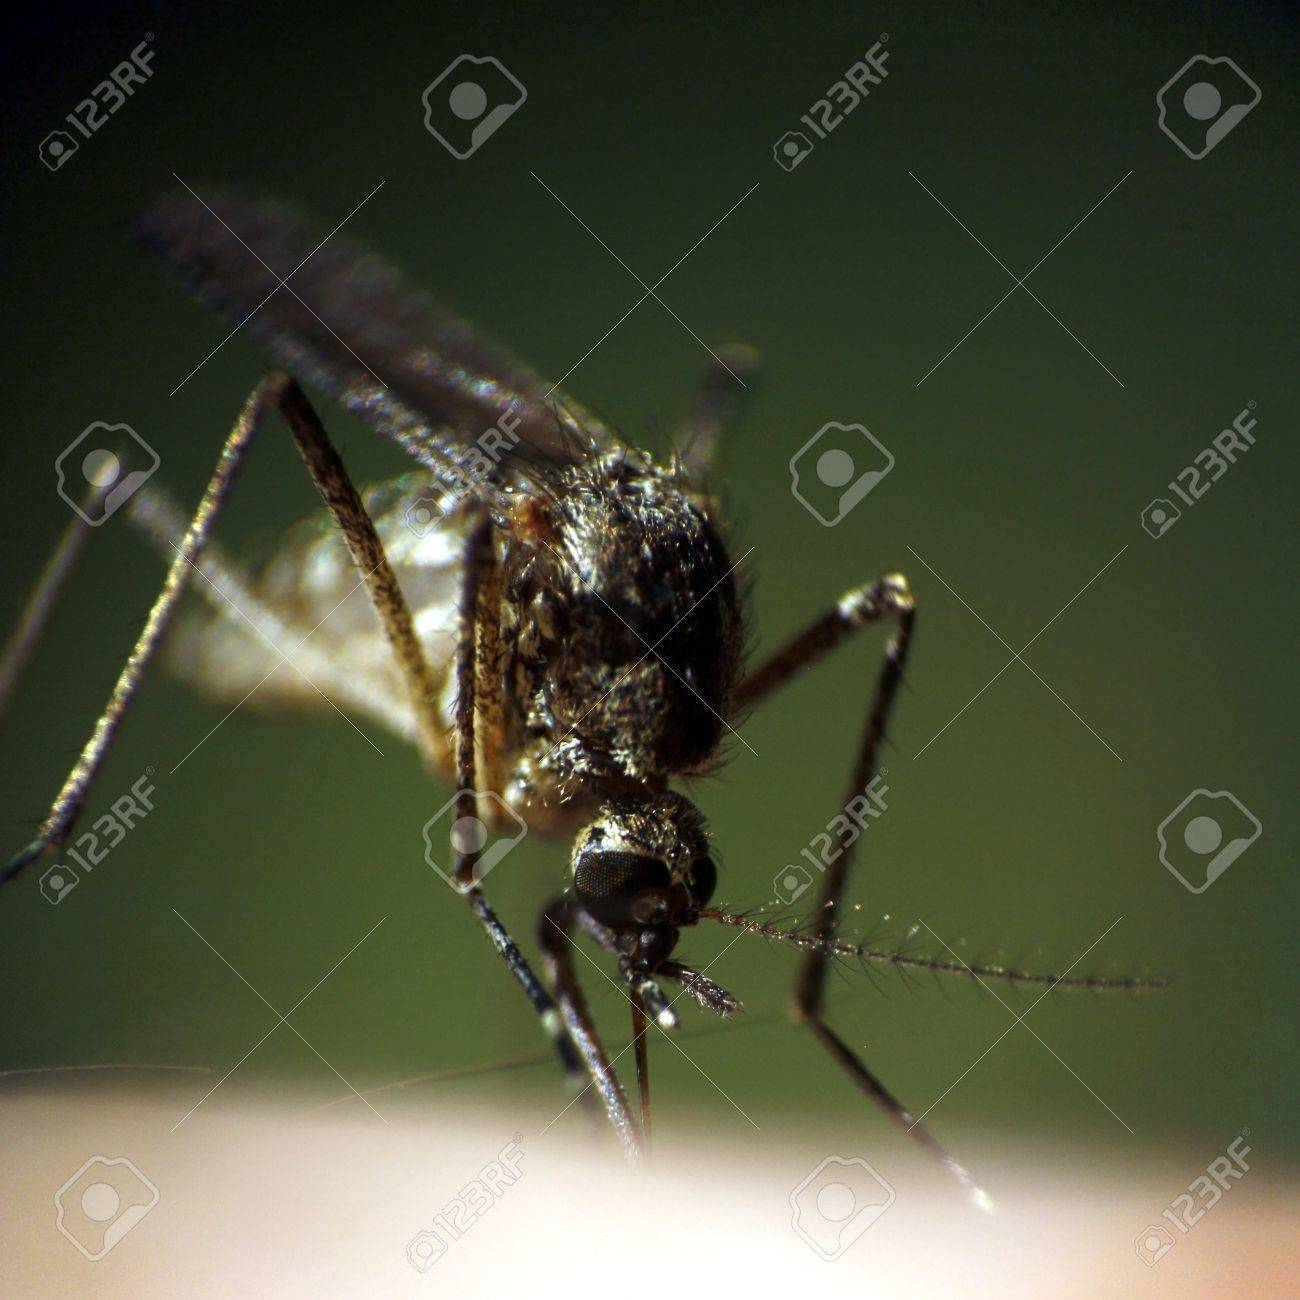 Super macro photography of sucking mosquito at green background Stock Photo - 11207879